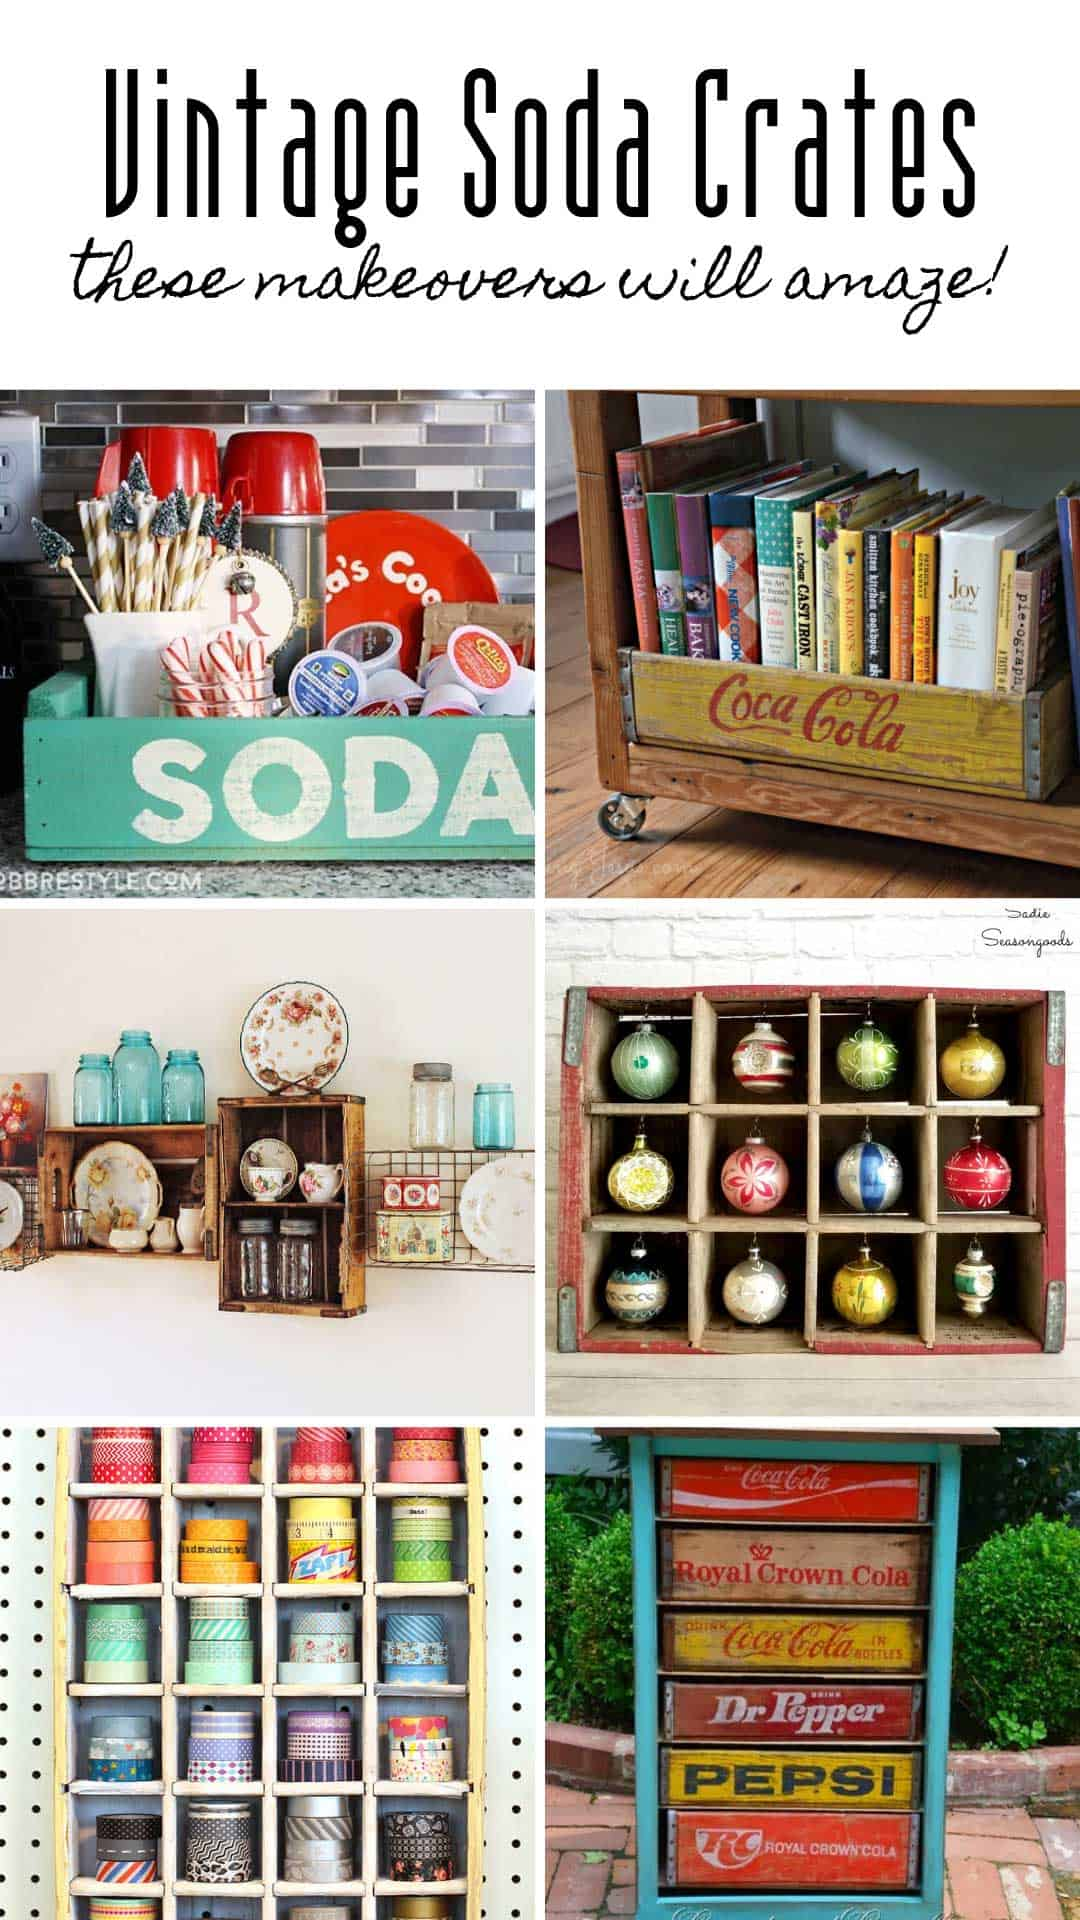 Who knew there would be so many soda crate DIY projects you could do with a repurposed Coca Cola crate! I can't wait to make a fairy garden and some tie storage for my husband's closet!